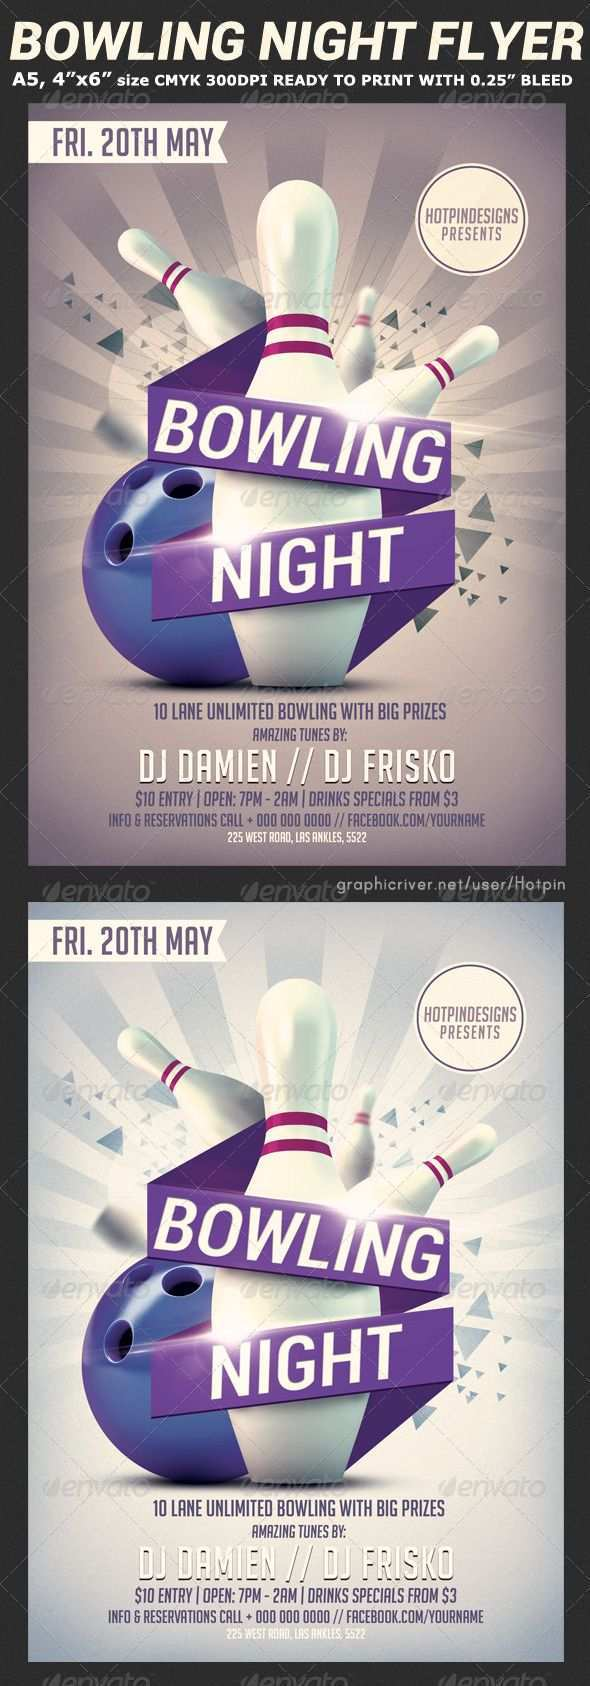 64 Free Printable Bowling Event Flyer Template Formating for Bowling Event Flyer Template